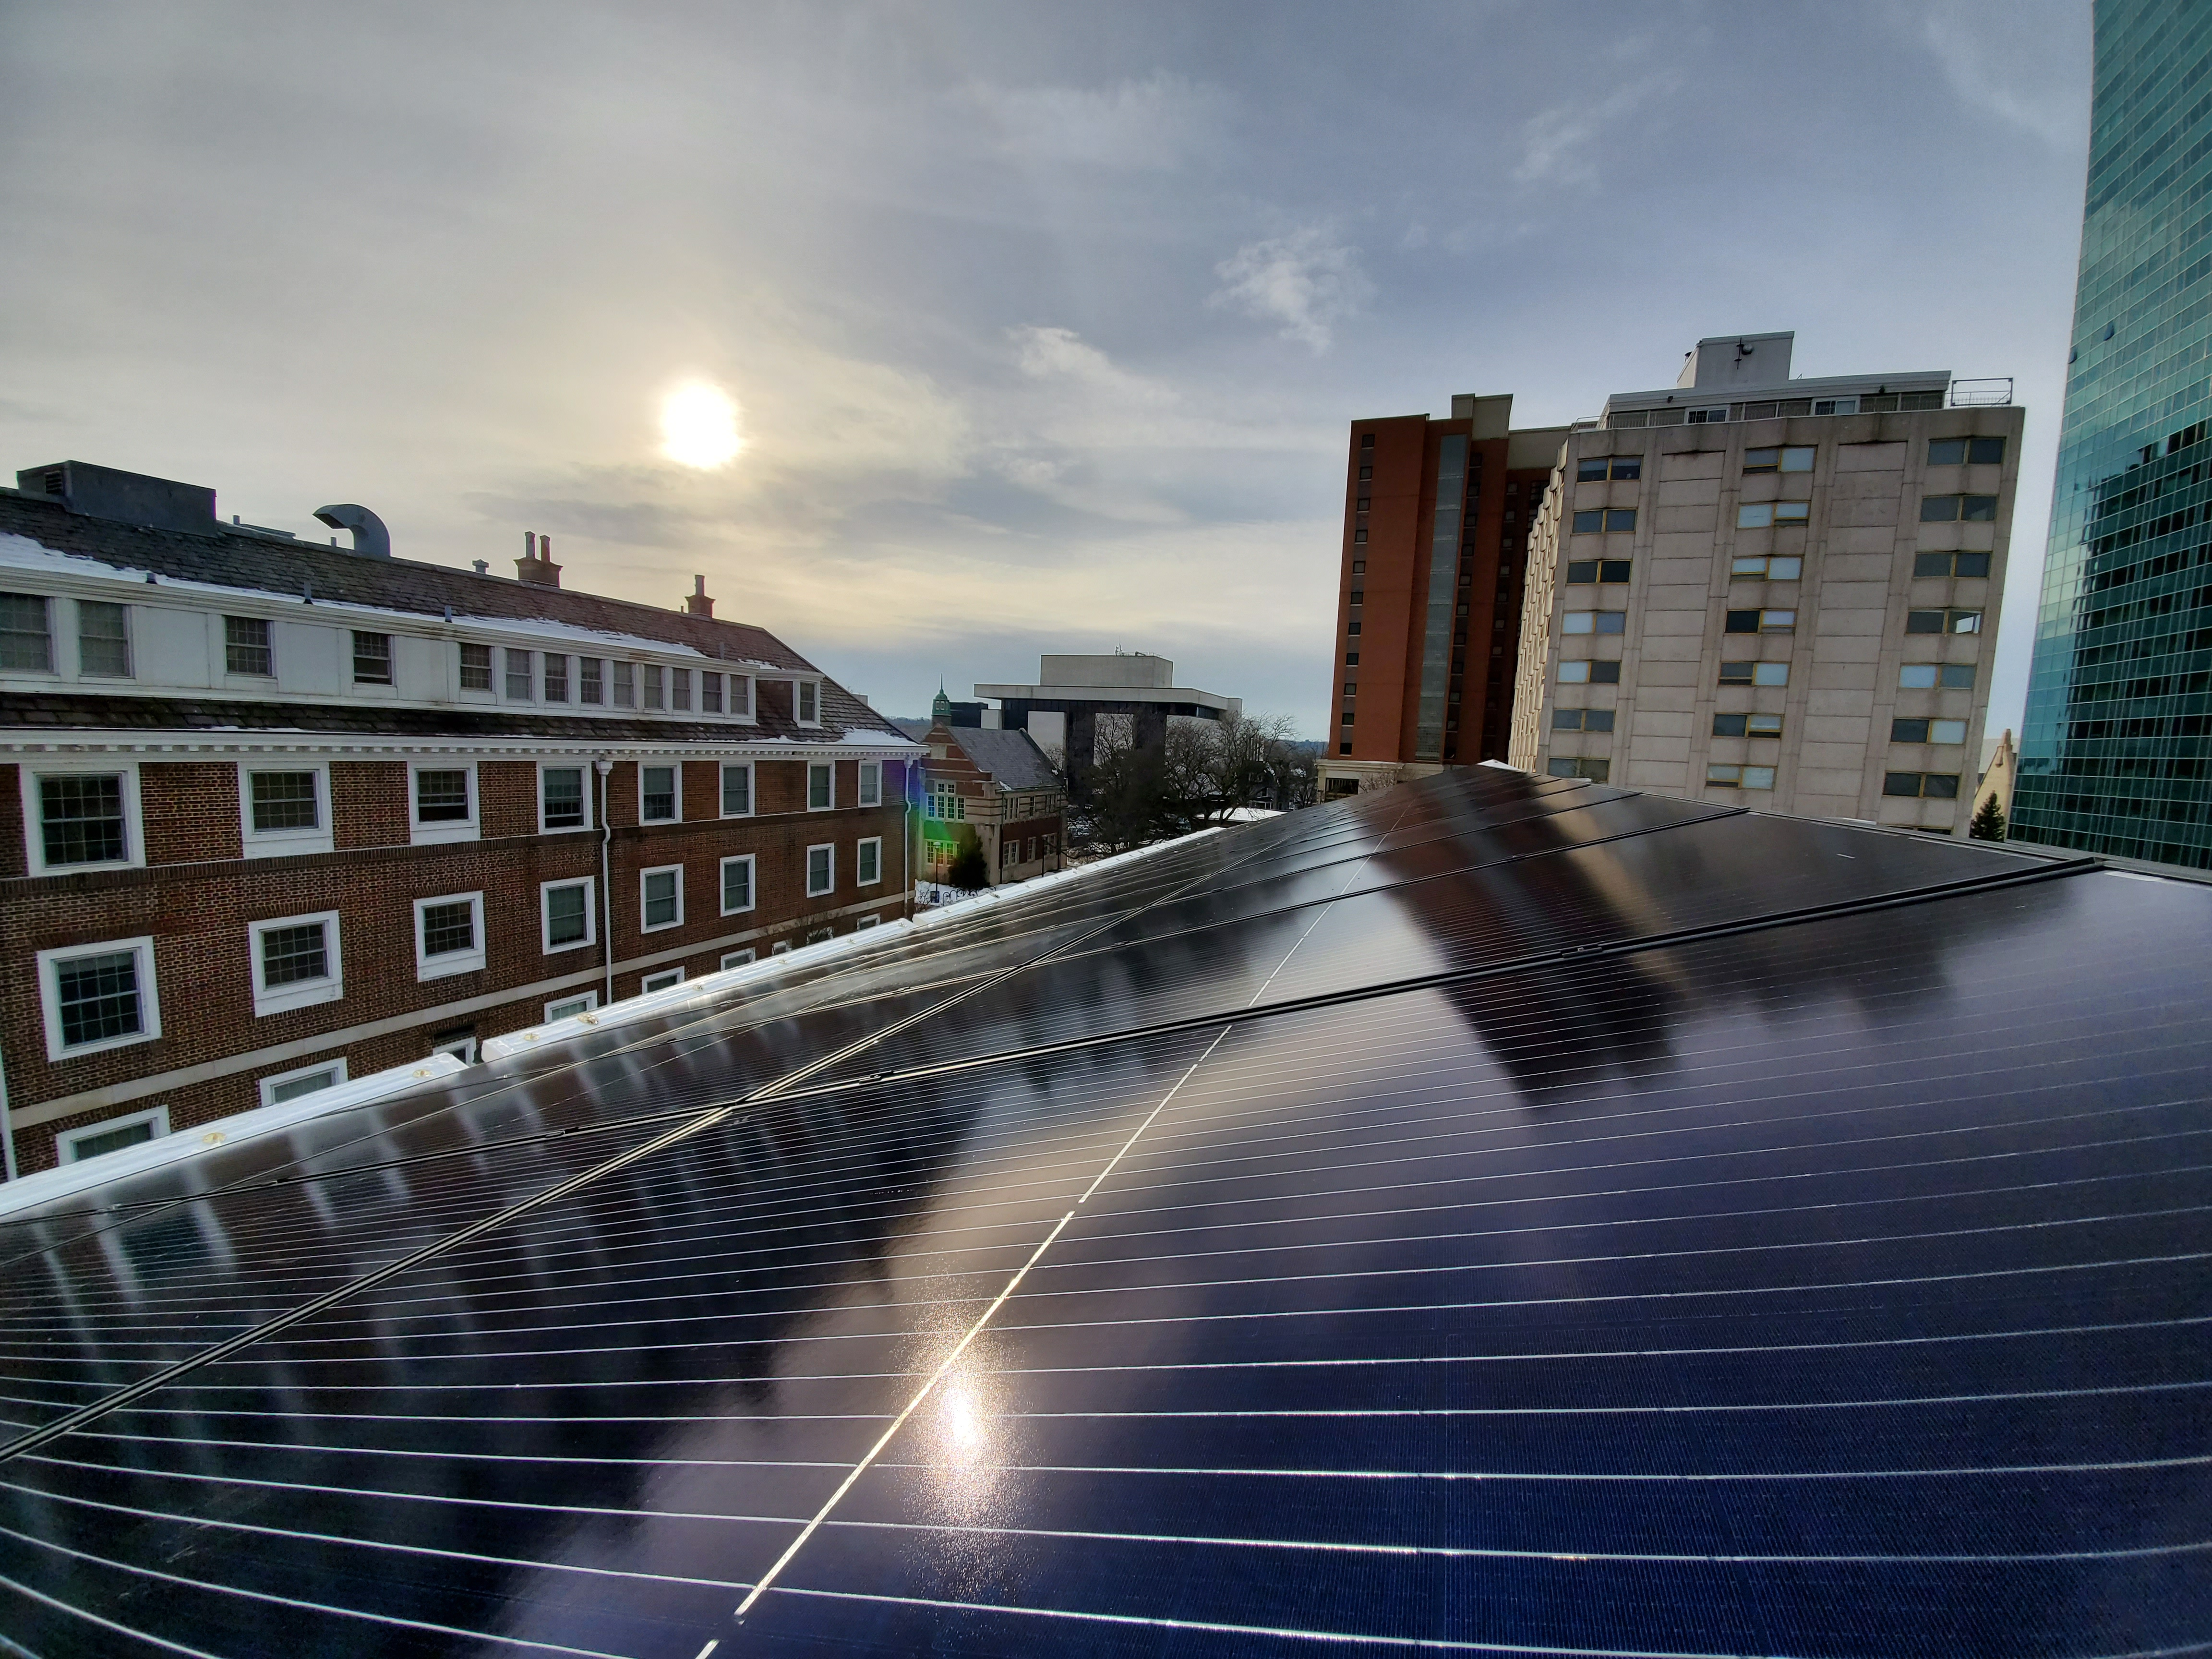 Close up of solar panels on roof